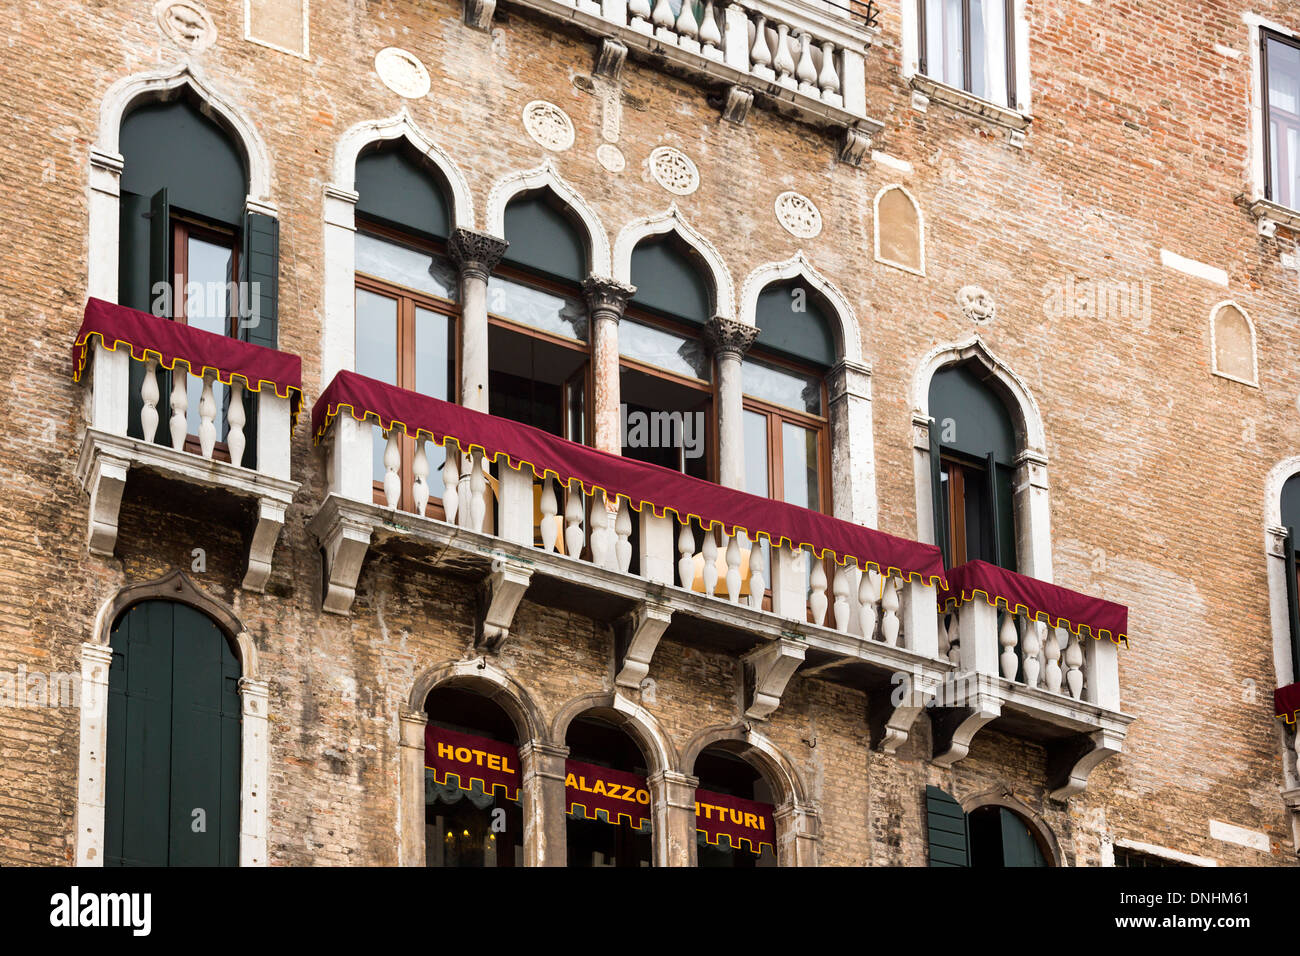 Low angle view of a hotel, Palazzo Vitturi, Campo Santa Maria Formosa, Venise, Vénétie, Italie Banque D'Images